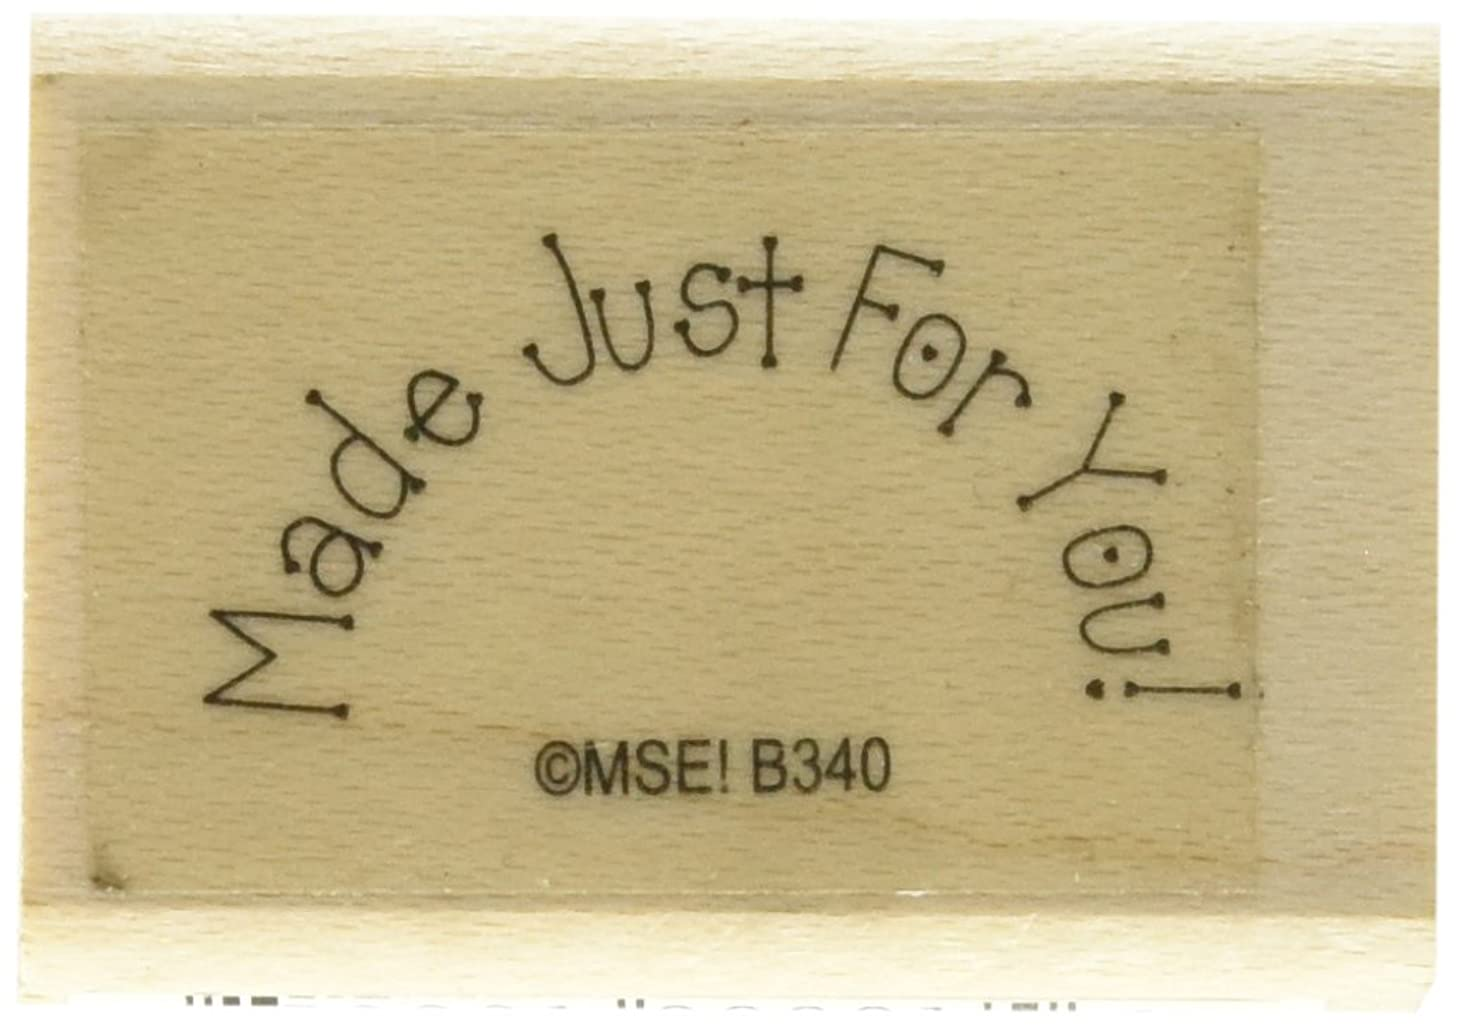 MSE My Sentiments Exactly Mounted Stamp, 1